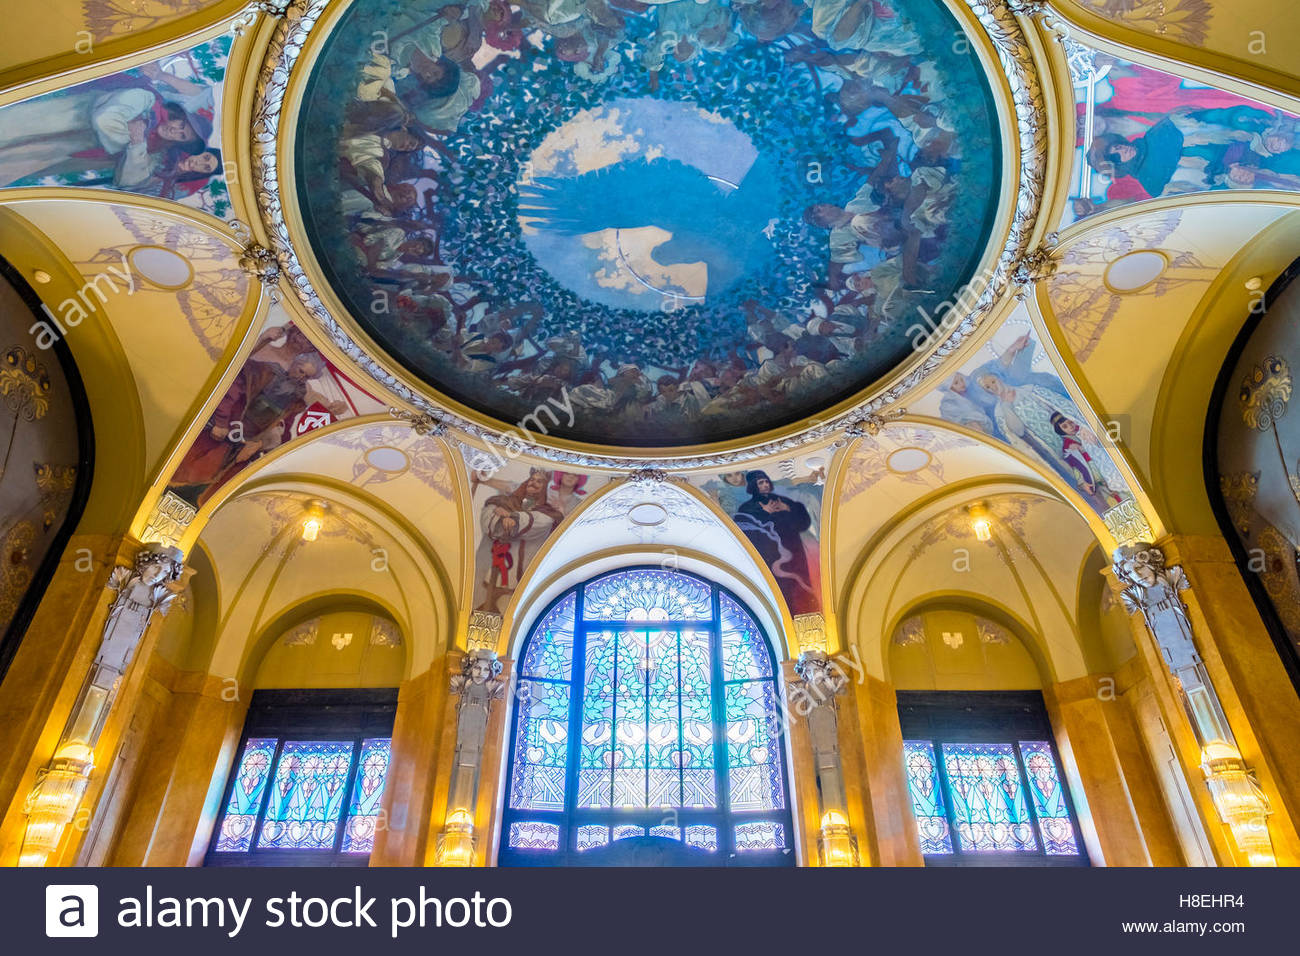 The Mucha Room at Municipal House, designed entirely by Alphonse Mucha, Stare Mesto (Old Town), Prague, Czech Republic Stock Photo